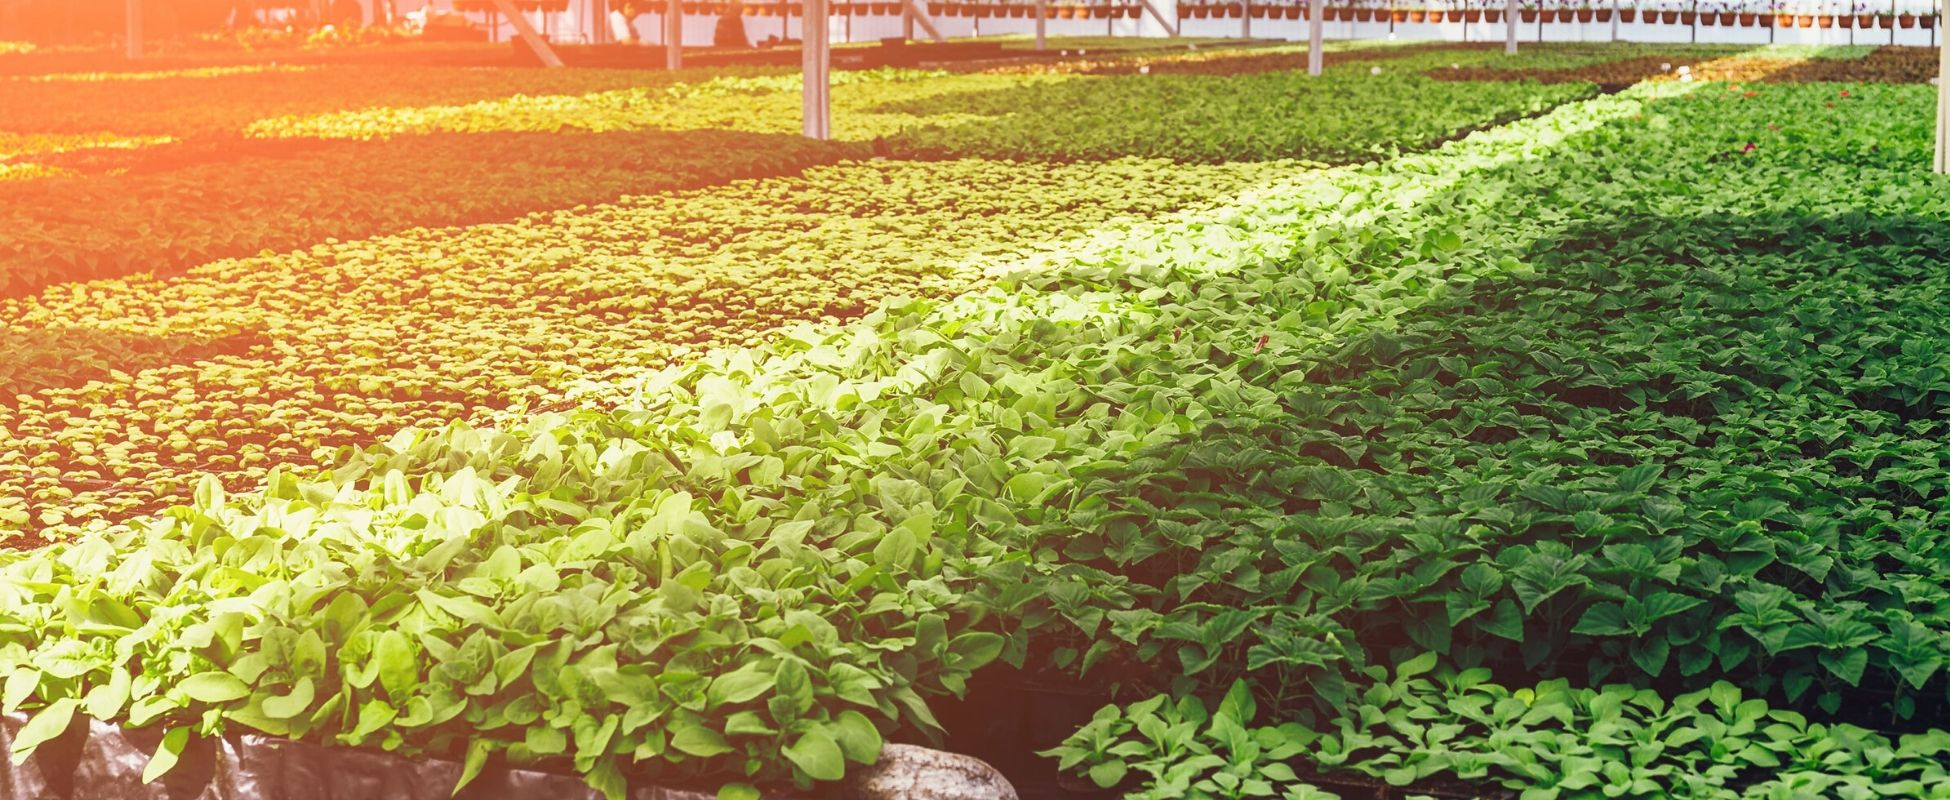 Horticulture water management